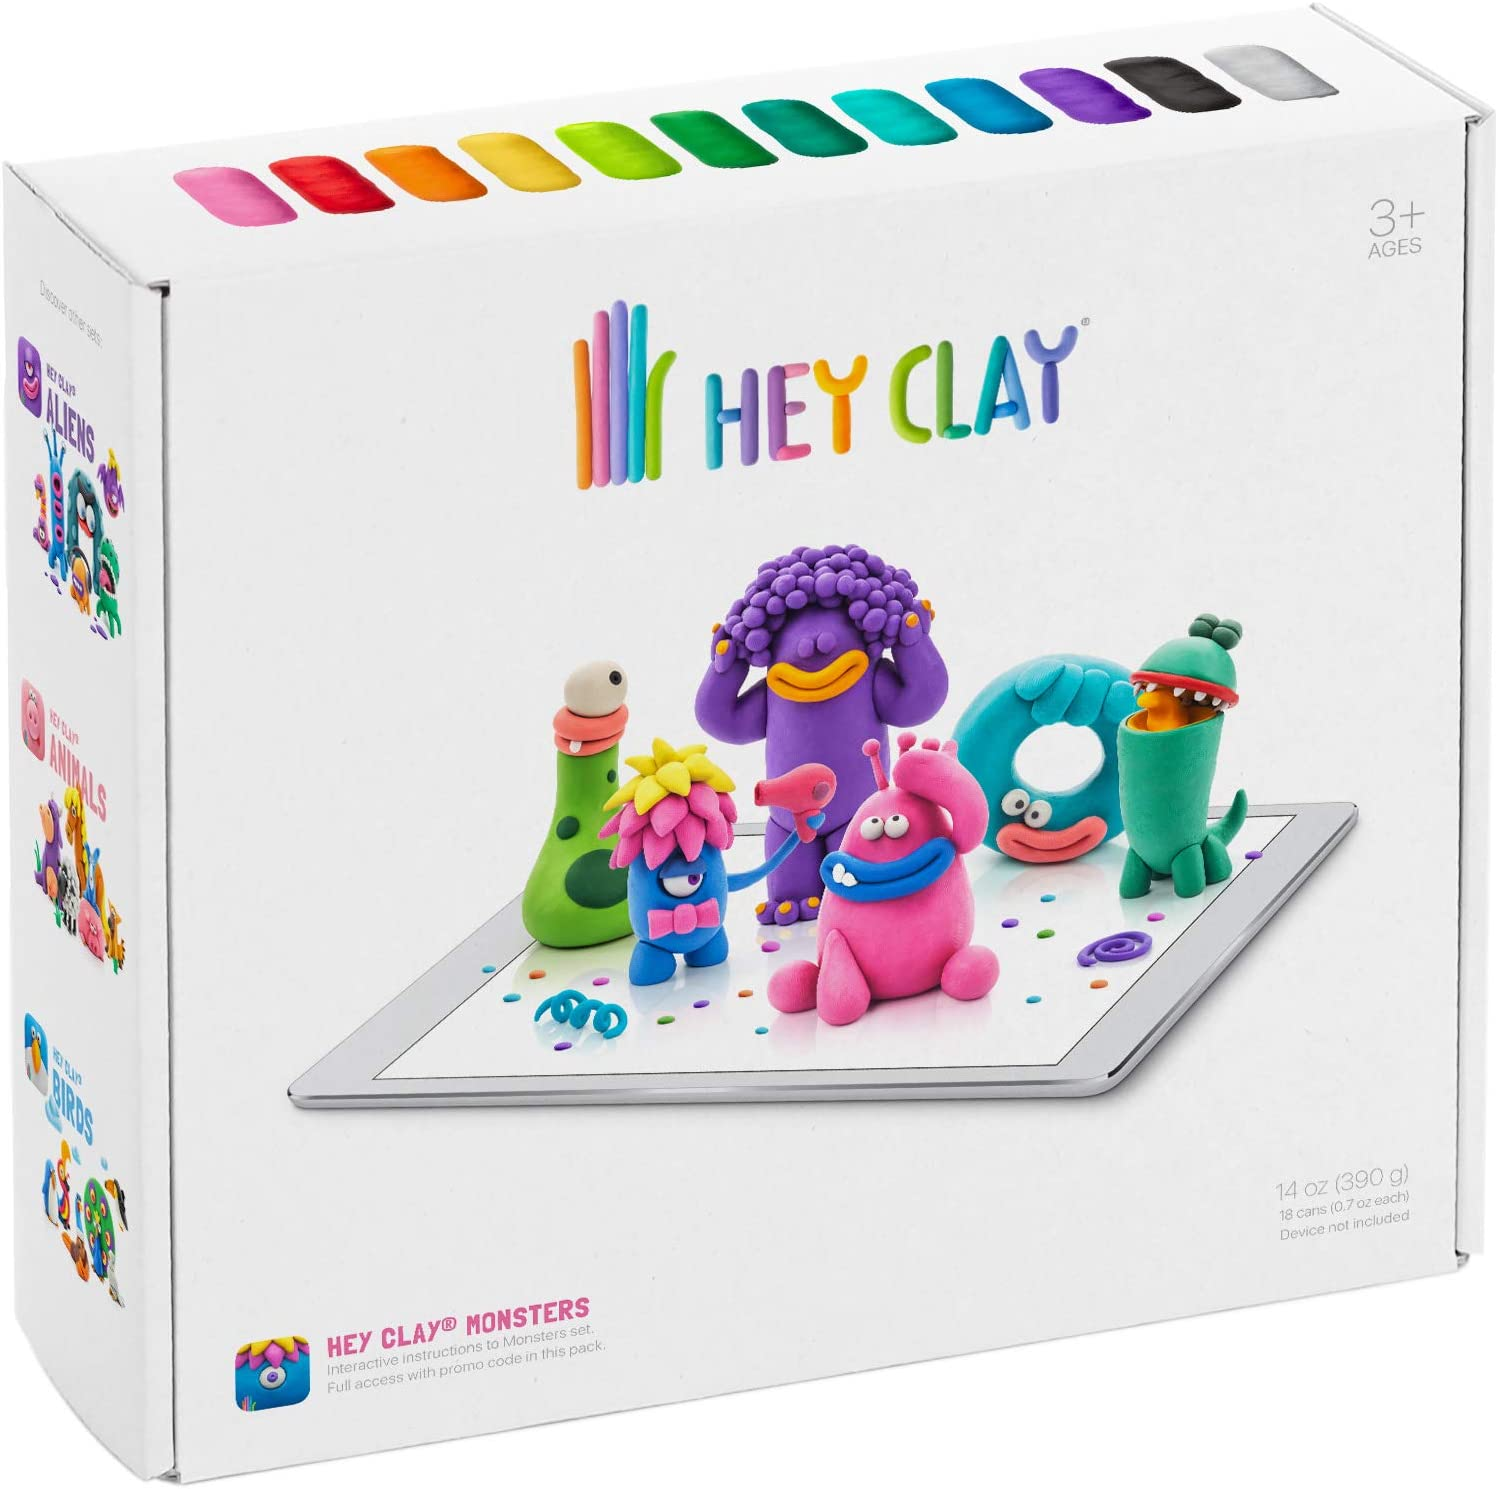 Amazon Com Hey Clay Monsters Colorful Kids Modeling Air Dry Clay 18 Cans With Fun Interactive App Toys Games